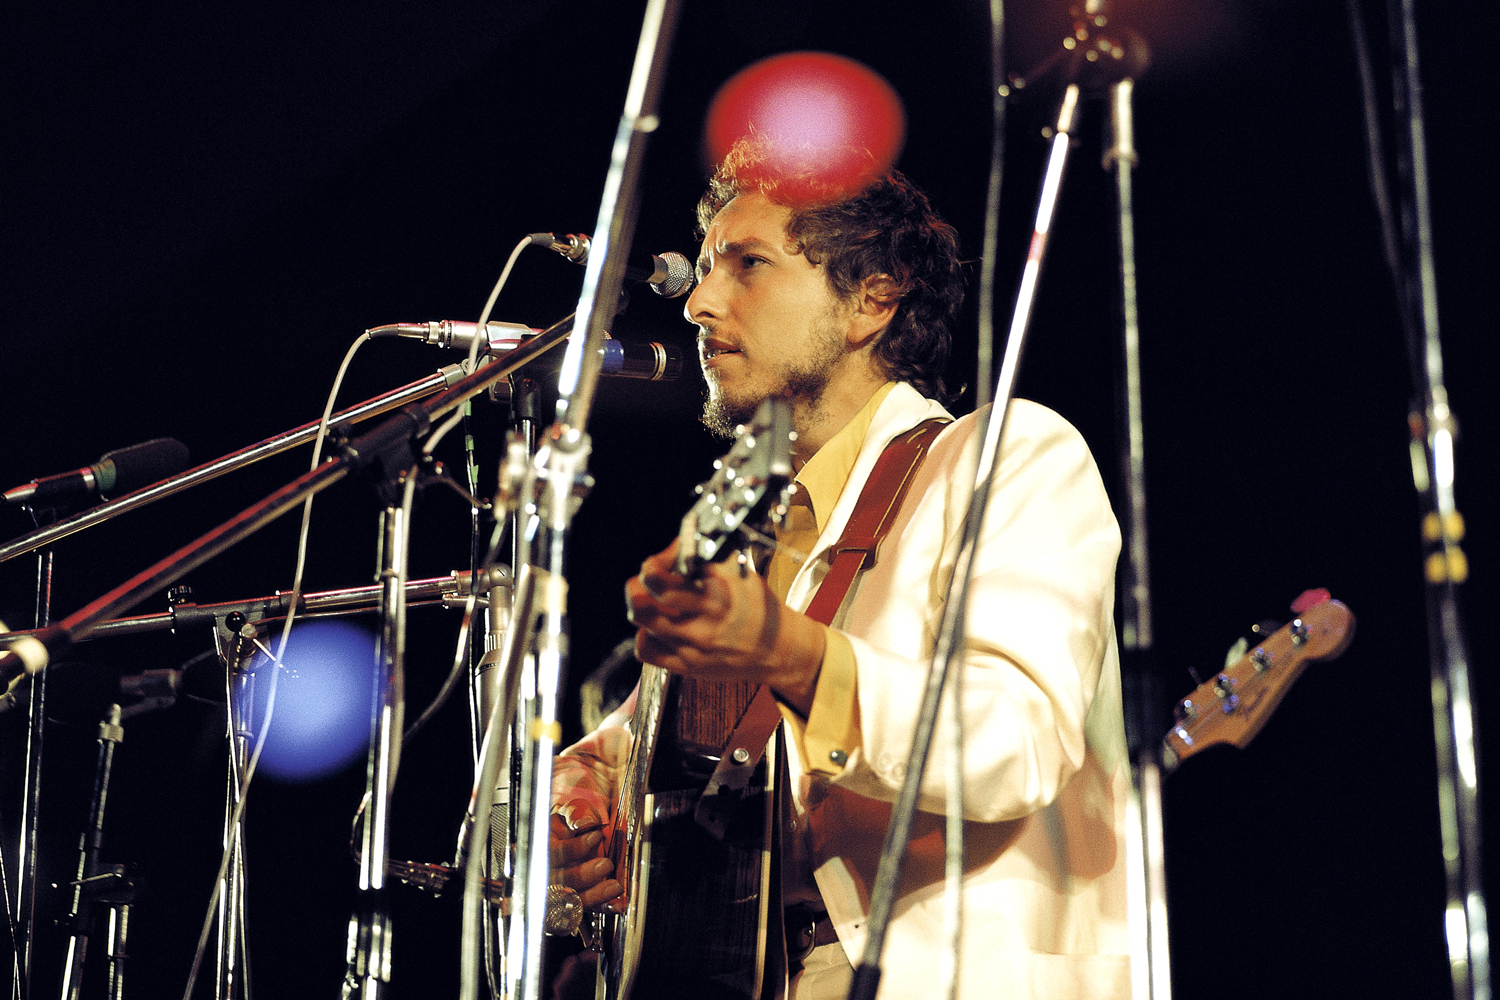 UNITED KINGDOM - AUGUST 31:  ISLE OF WIGHT FESTIVAL  Photo of Bob DYLAN, performing live onstage.  (Photo by David Redfern/Redferns)